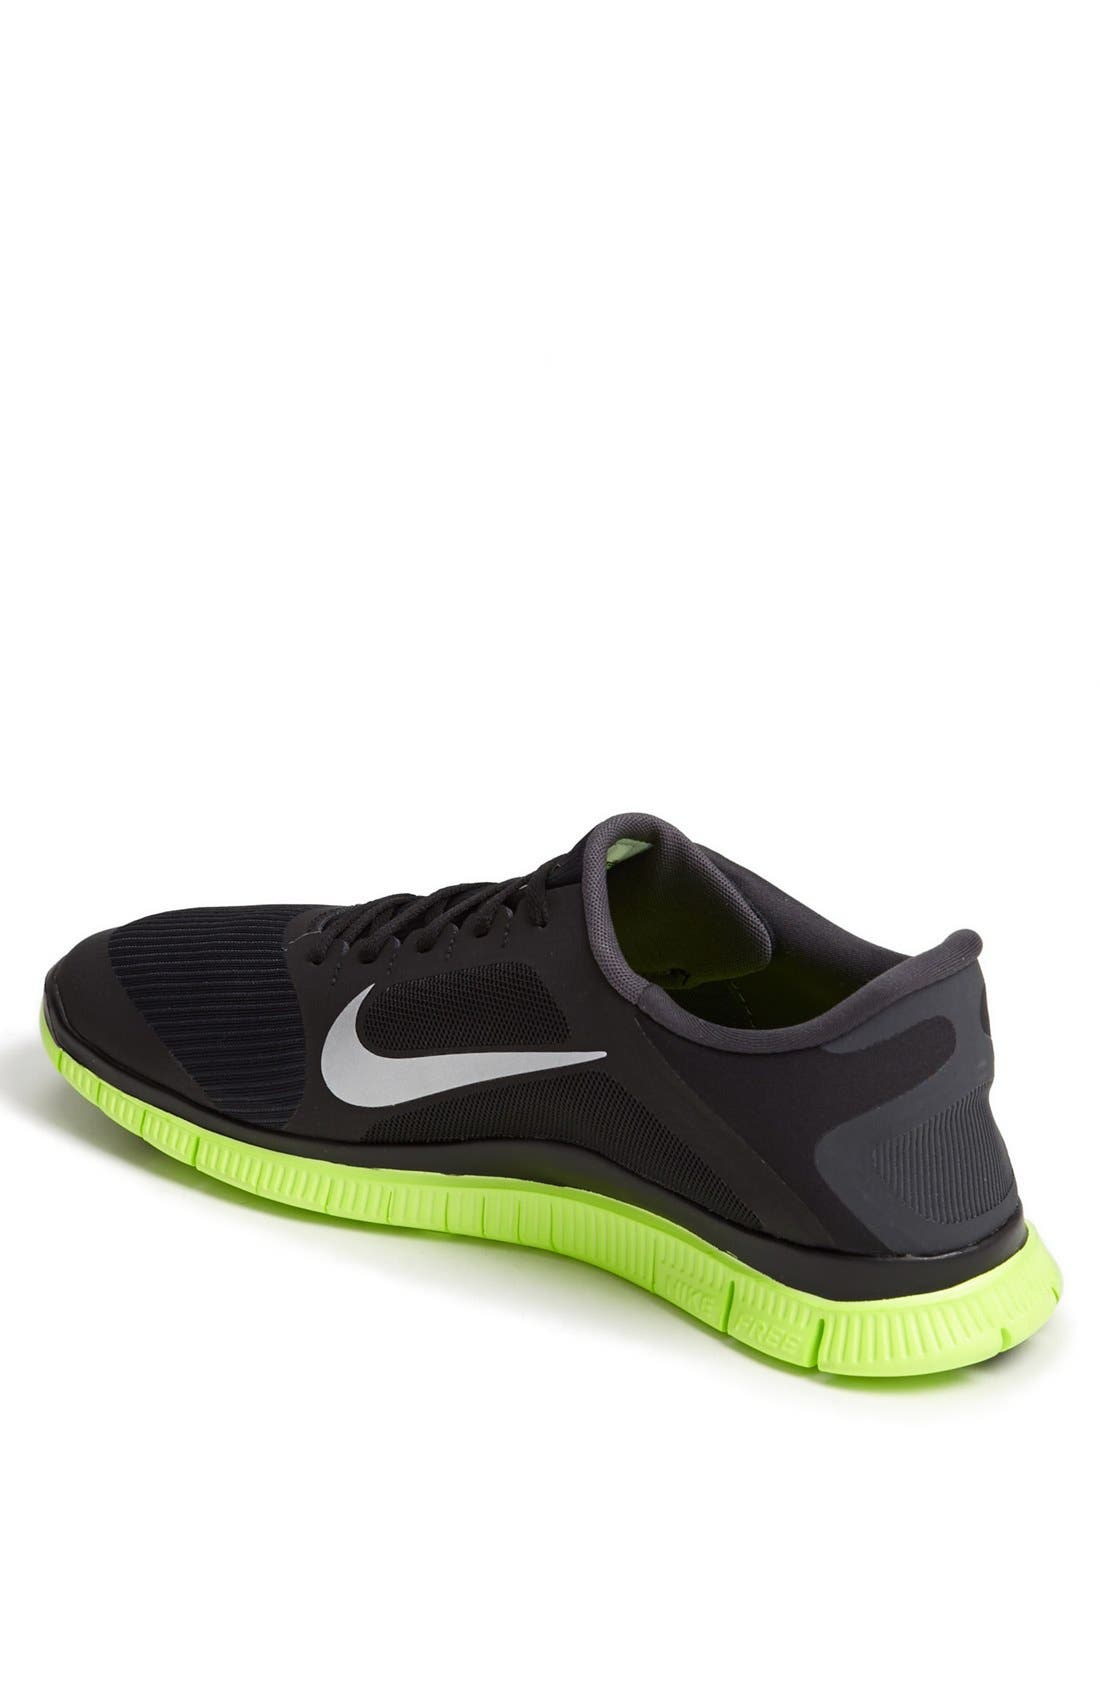 Alternate Image 2  - Nike 'Free 4.0 V3' Running Shoe (Men)